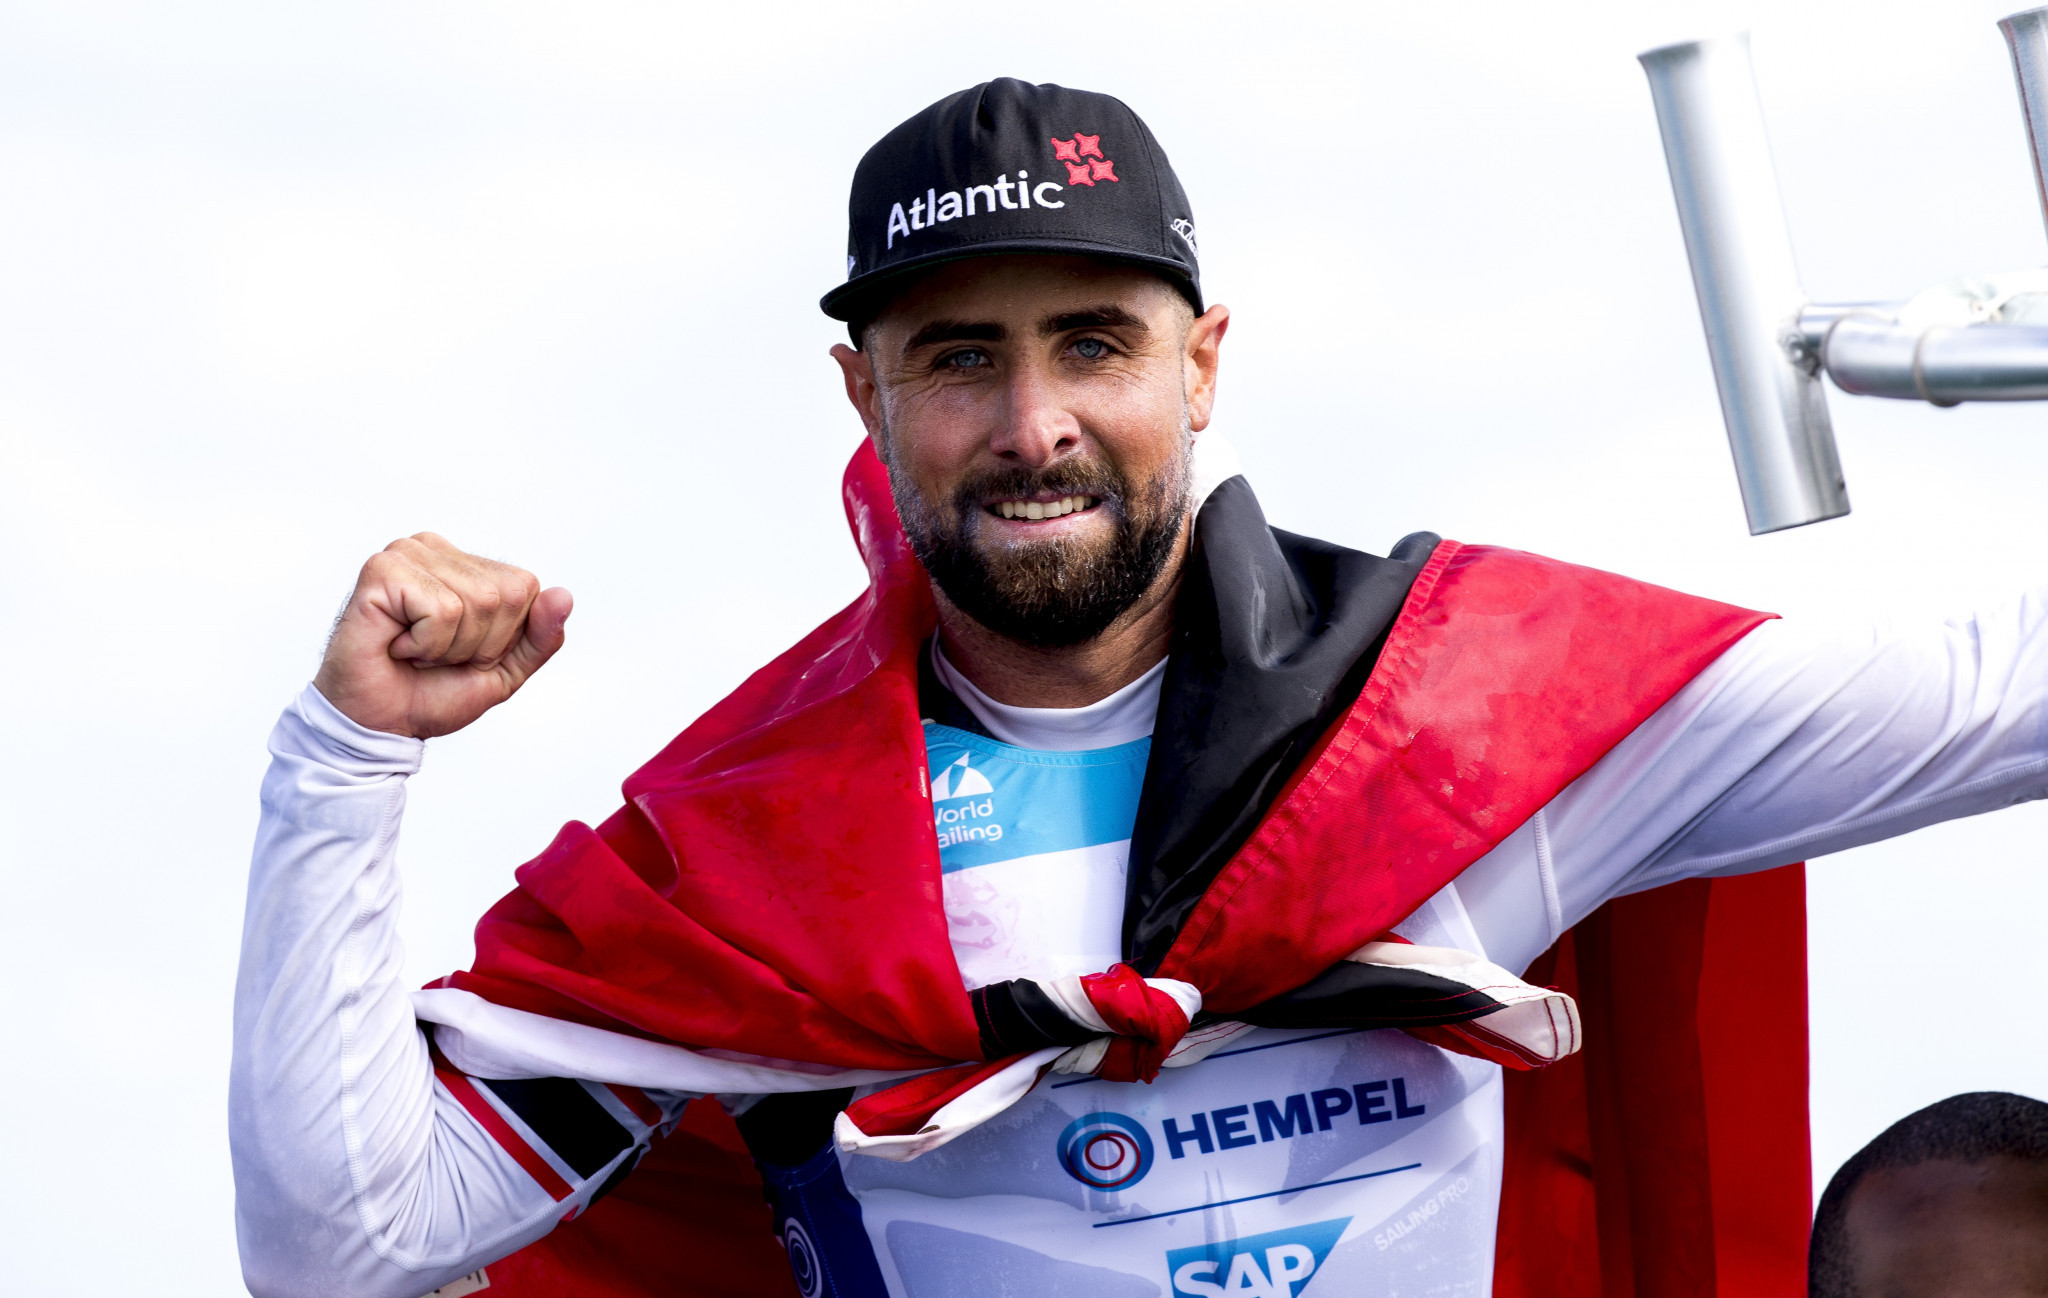 Lewis earns Olympic spot for Trinidad and Tobago at Sailing World Cup in Miami